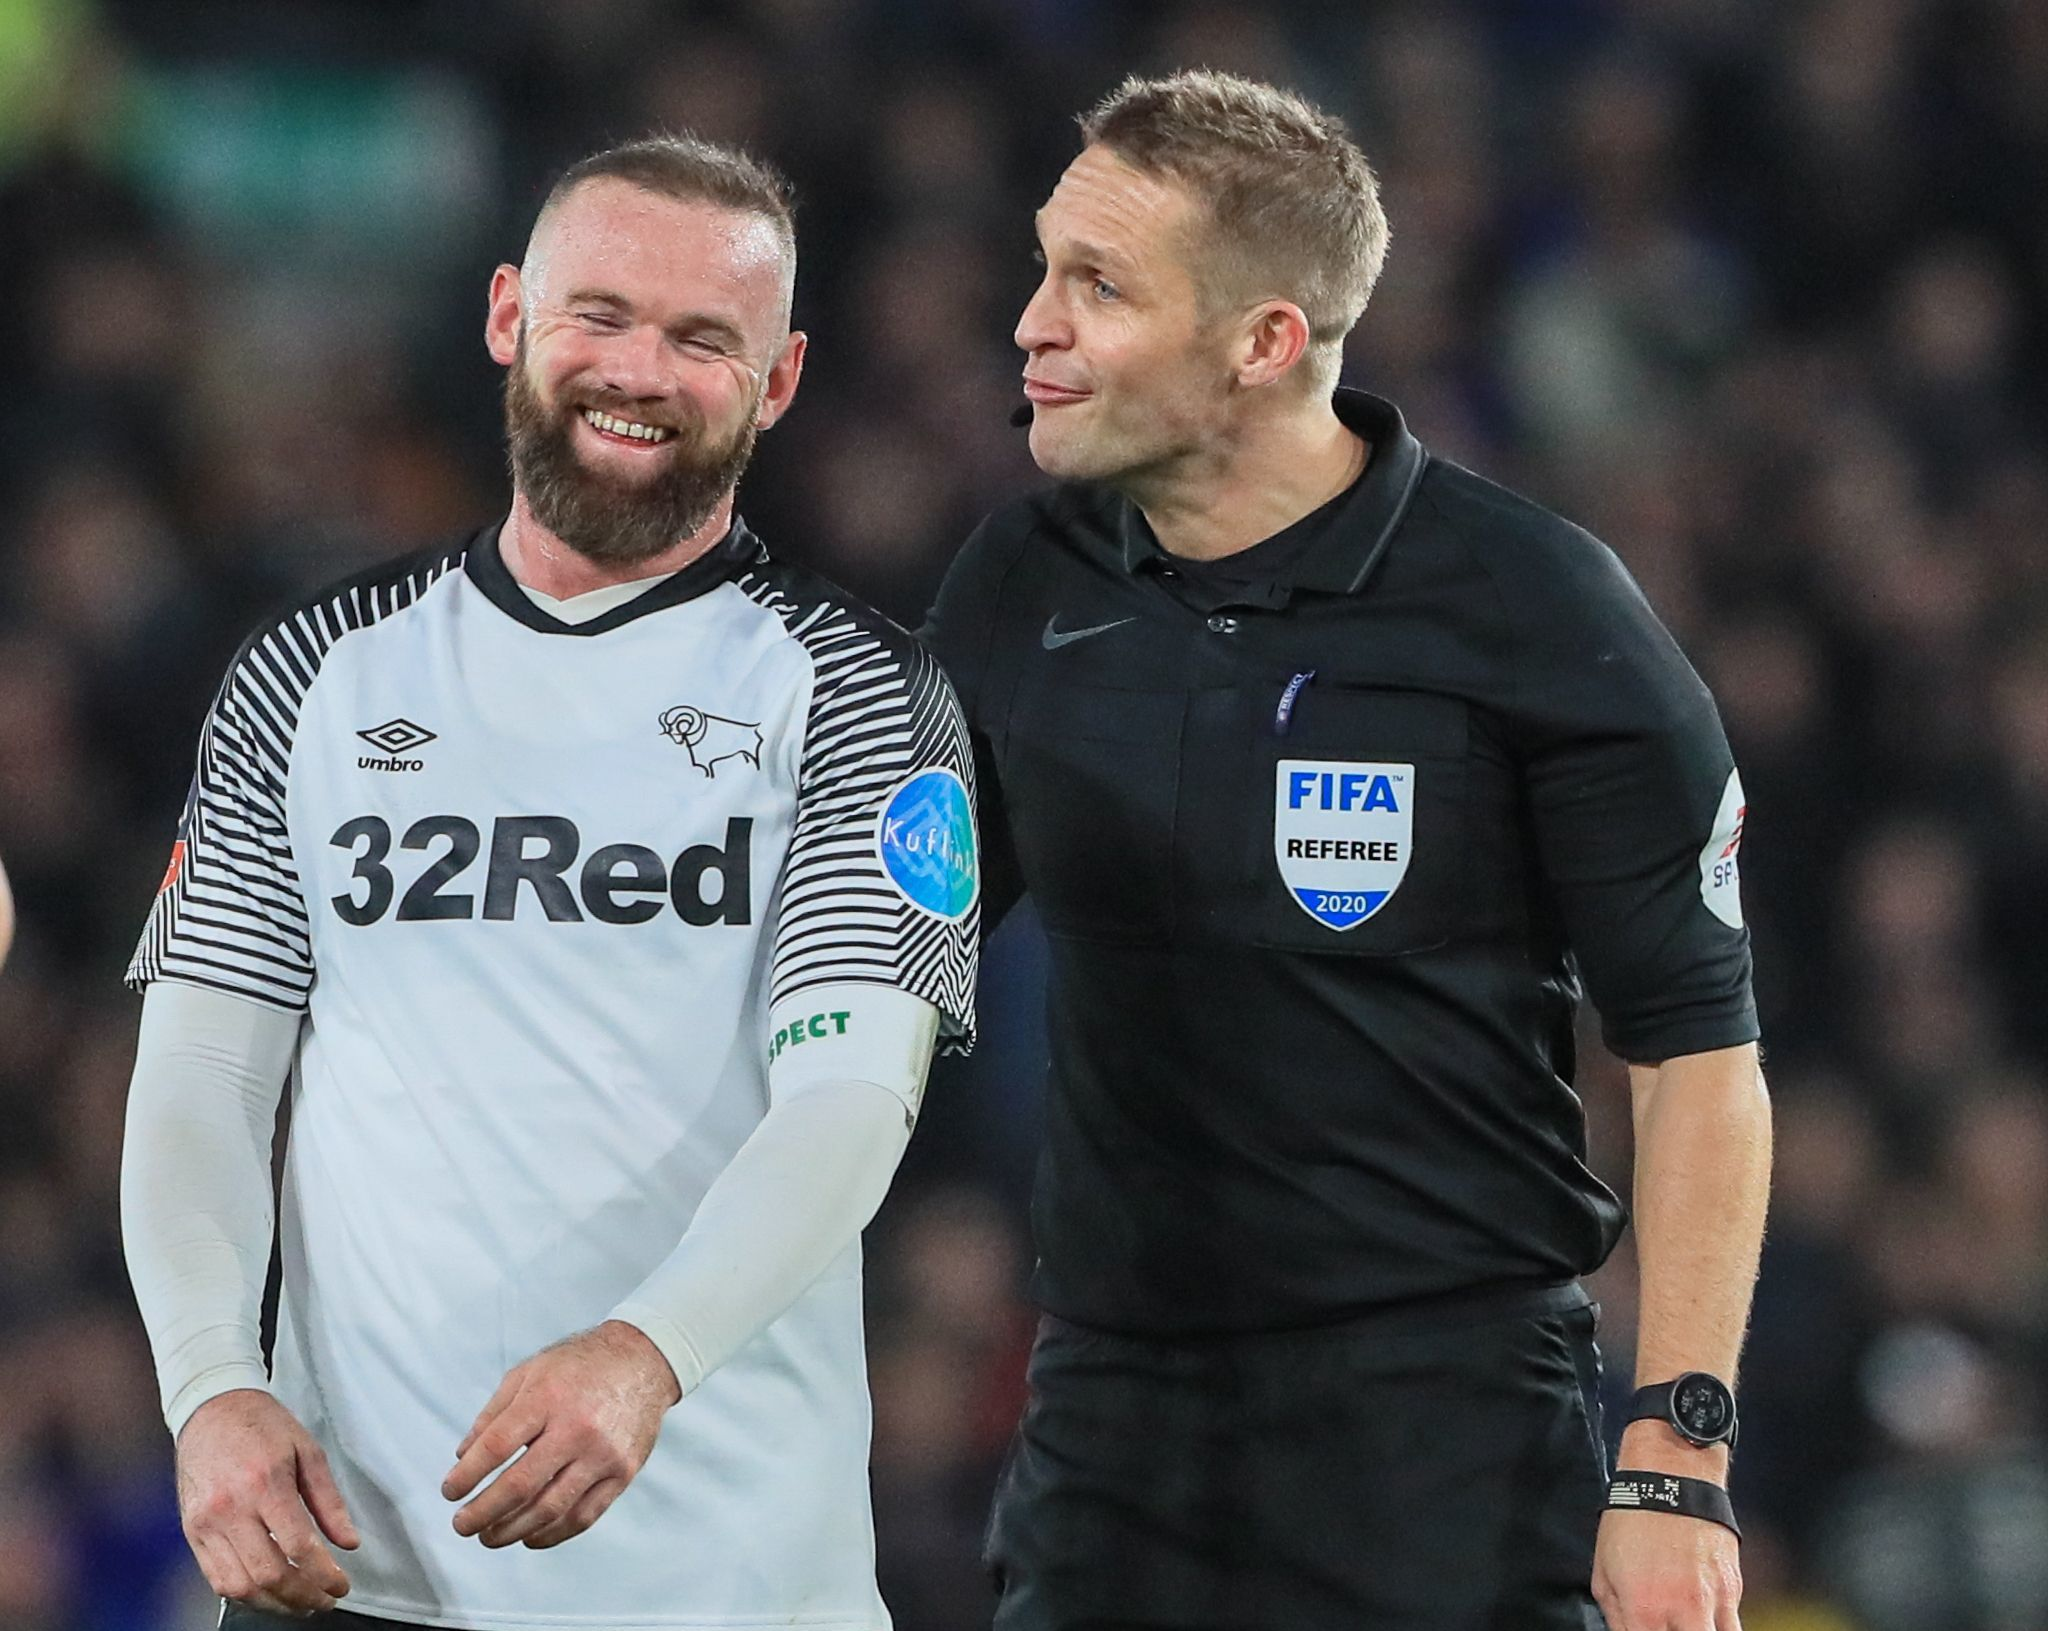 5th March 2020, Pride Park Stadium, Derby, England; Emirates FA Cup 5th Round, Derby County v Manchester United : Wayne Rooney (32) of Derby County laughs with referee Craig Pawson Derby County v Manchester United, Emirates FA Cup Fifth Round, Football, Pride Park Stadium, Derby, UK - 05 Mar 2020, Image: 503871280, License: Rights-managed, Restrictions: EDITORIAL USE ONLY No use with unauthorised audio, video, data, fixture lists, club/league logos or